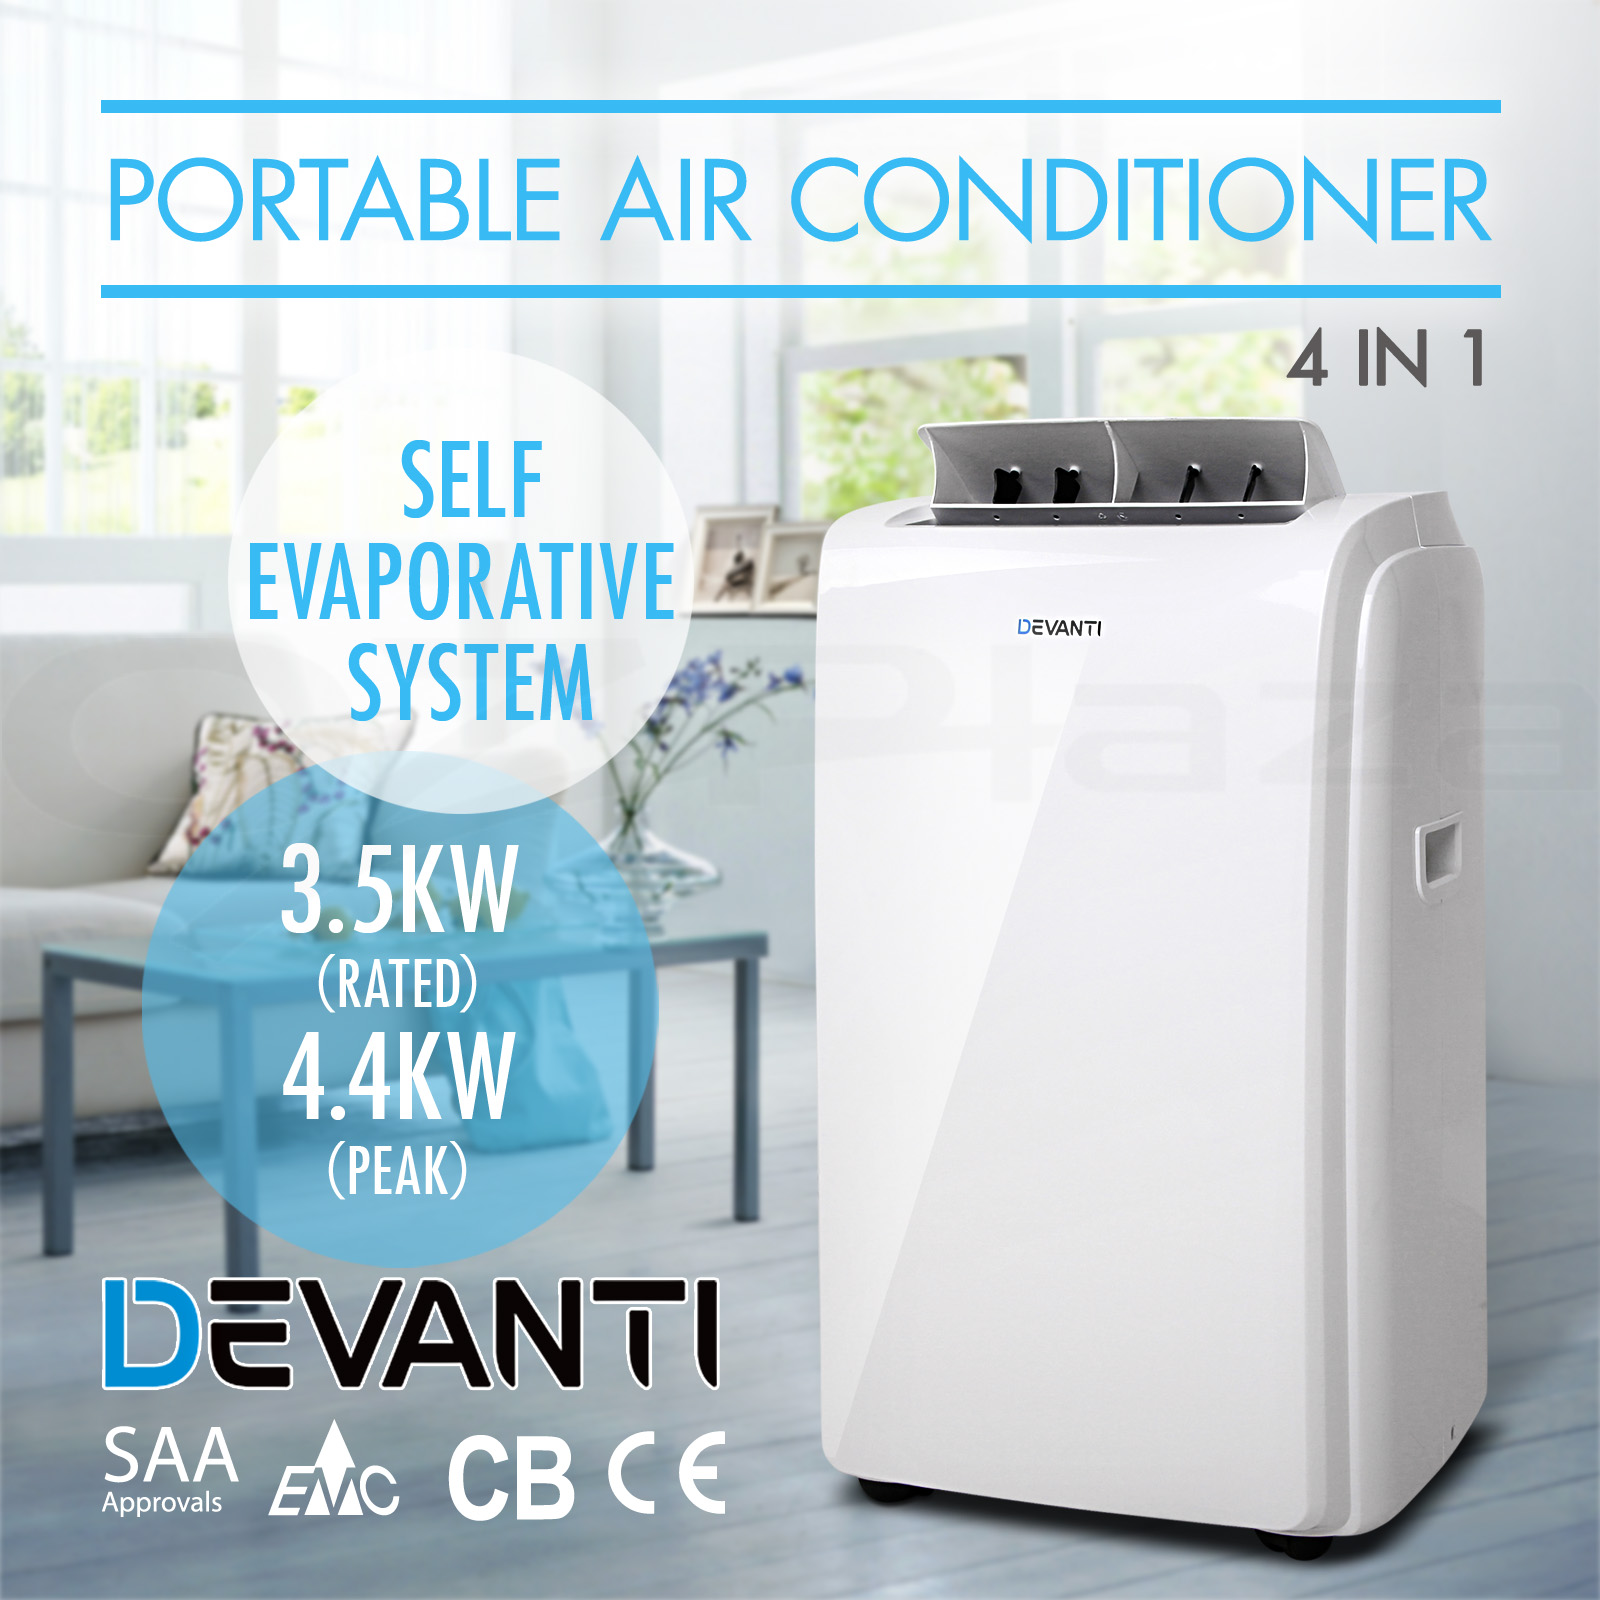 Details about DEVANTI Portable Air Conditioner 4.4KW Peak Cooling Fan  #0B88C0